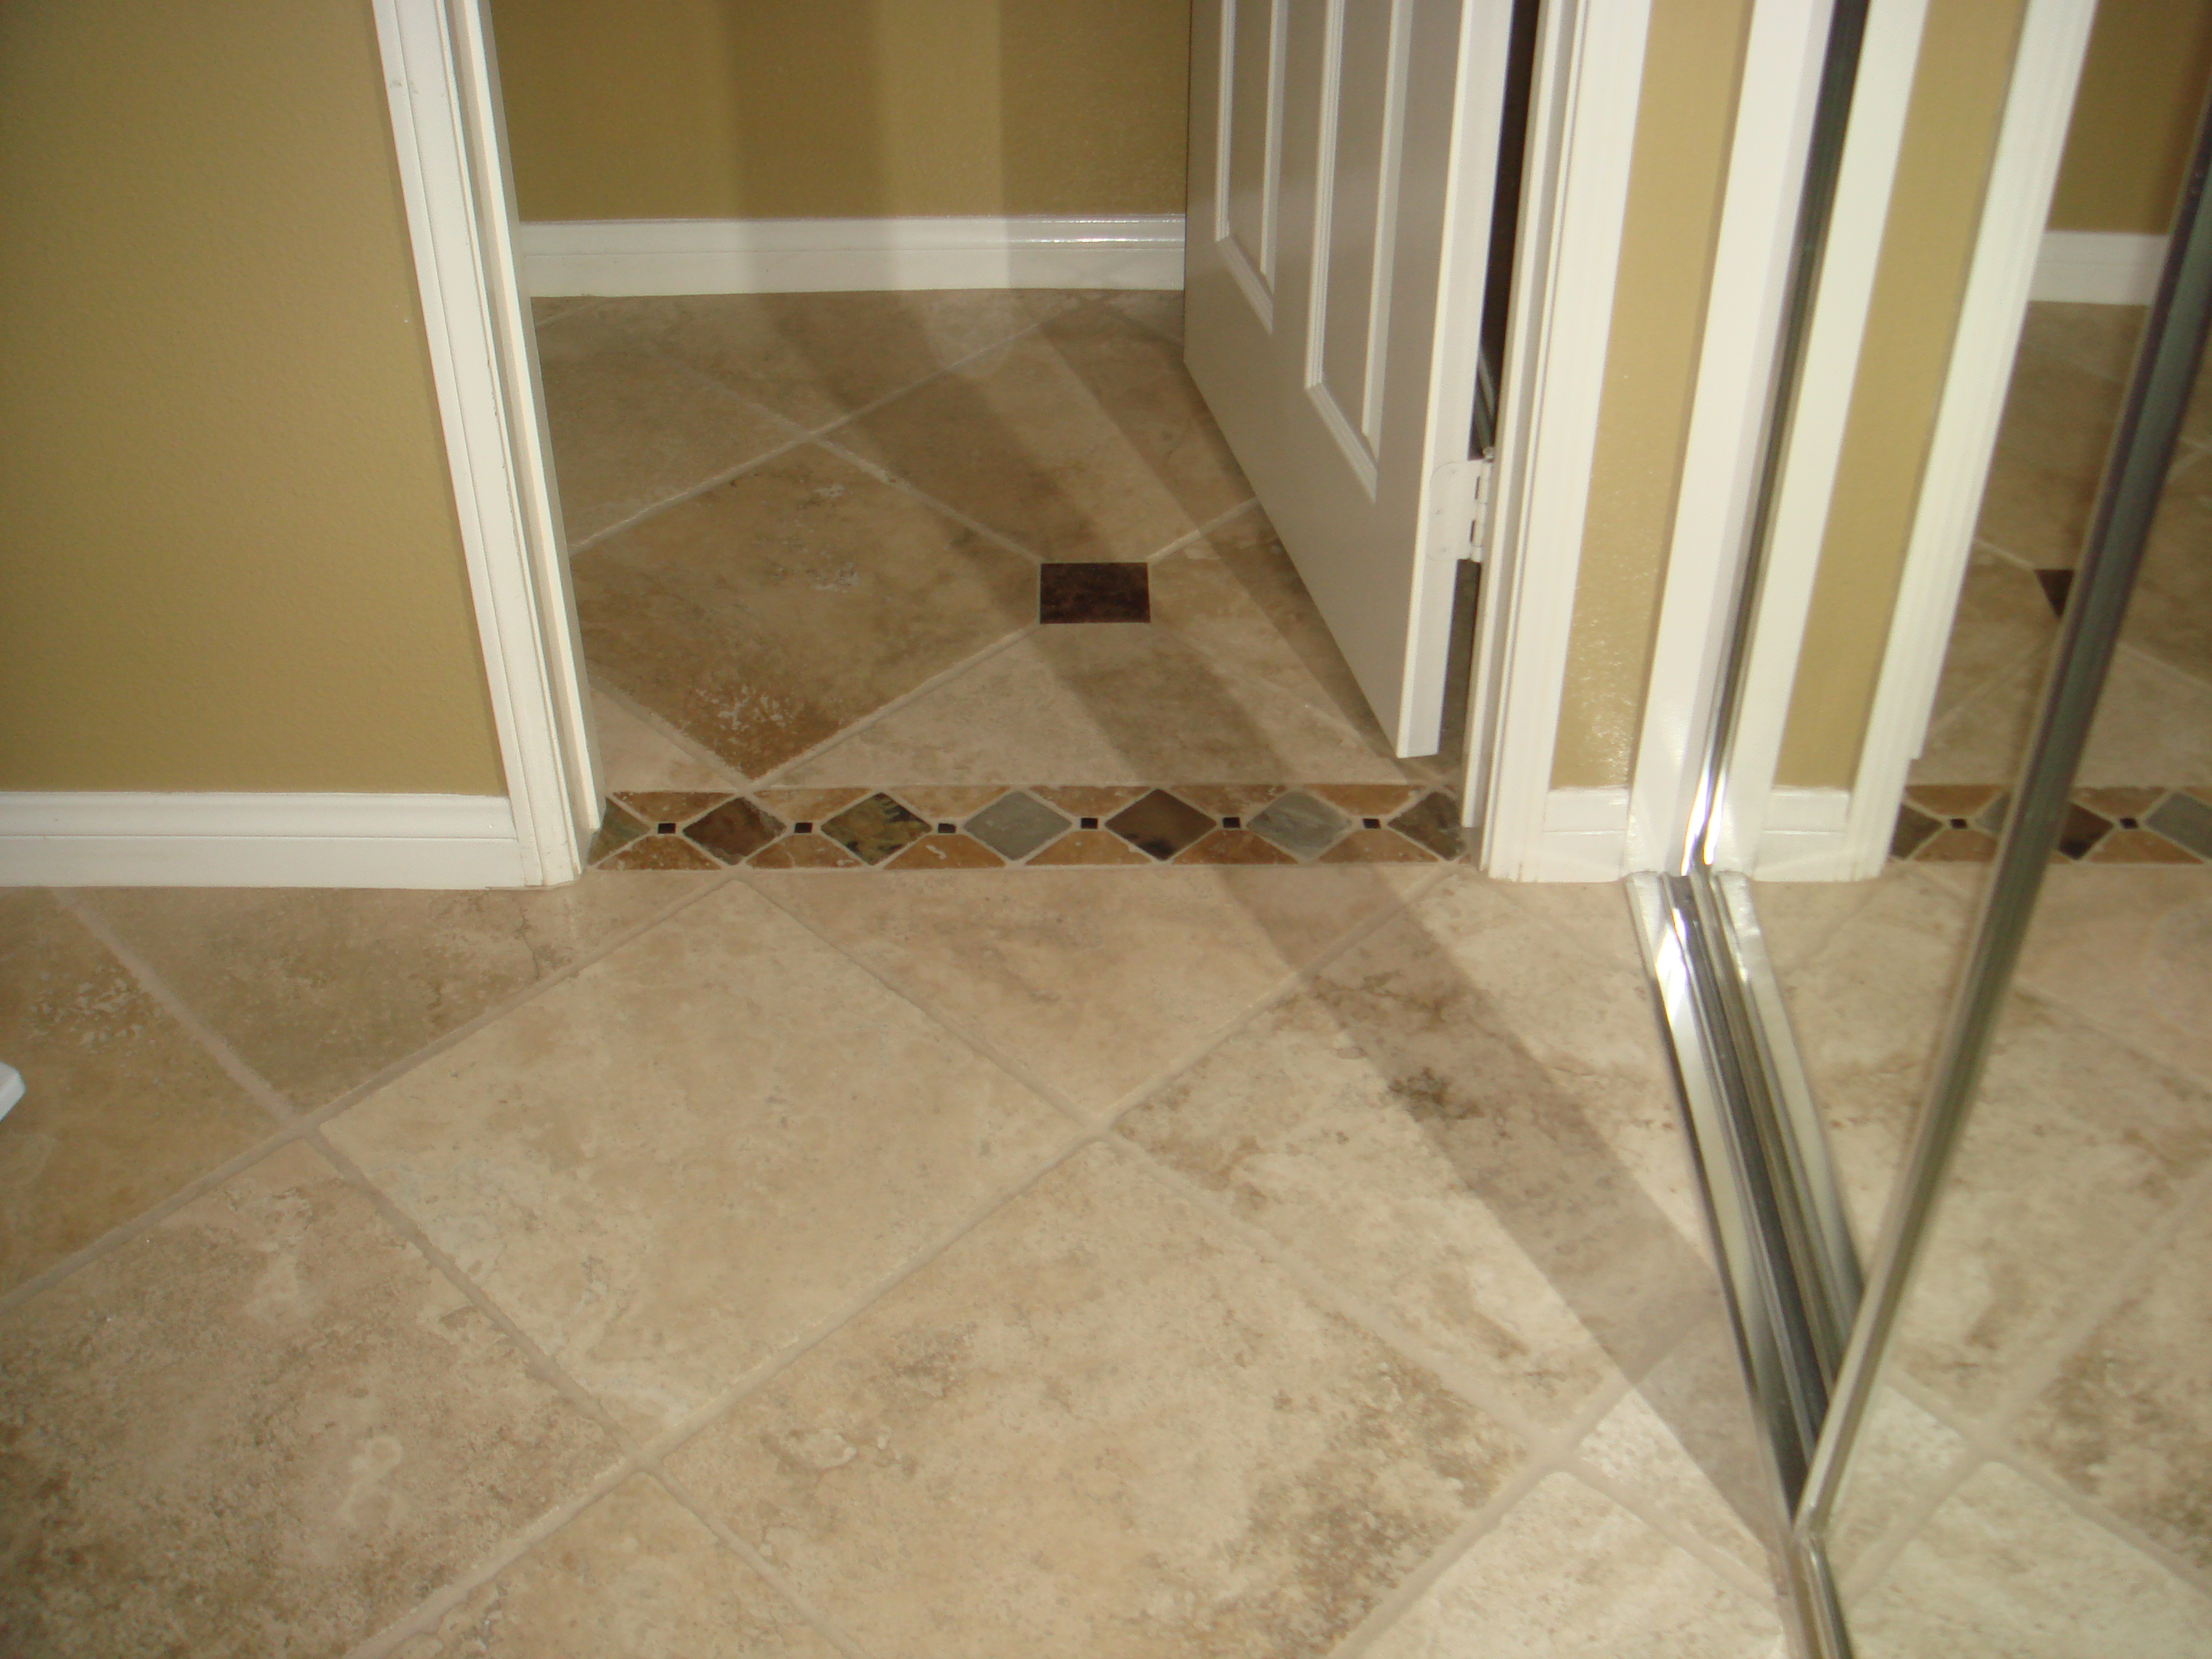 Installing bathroom tile